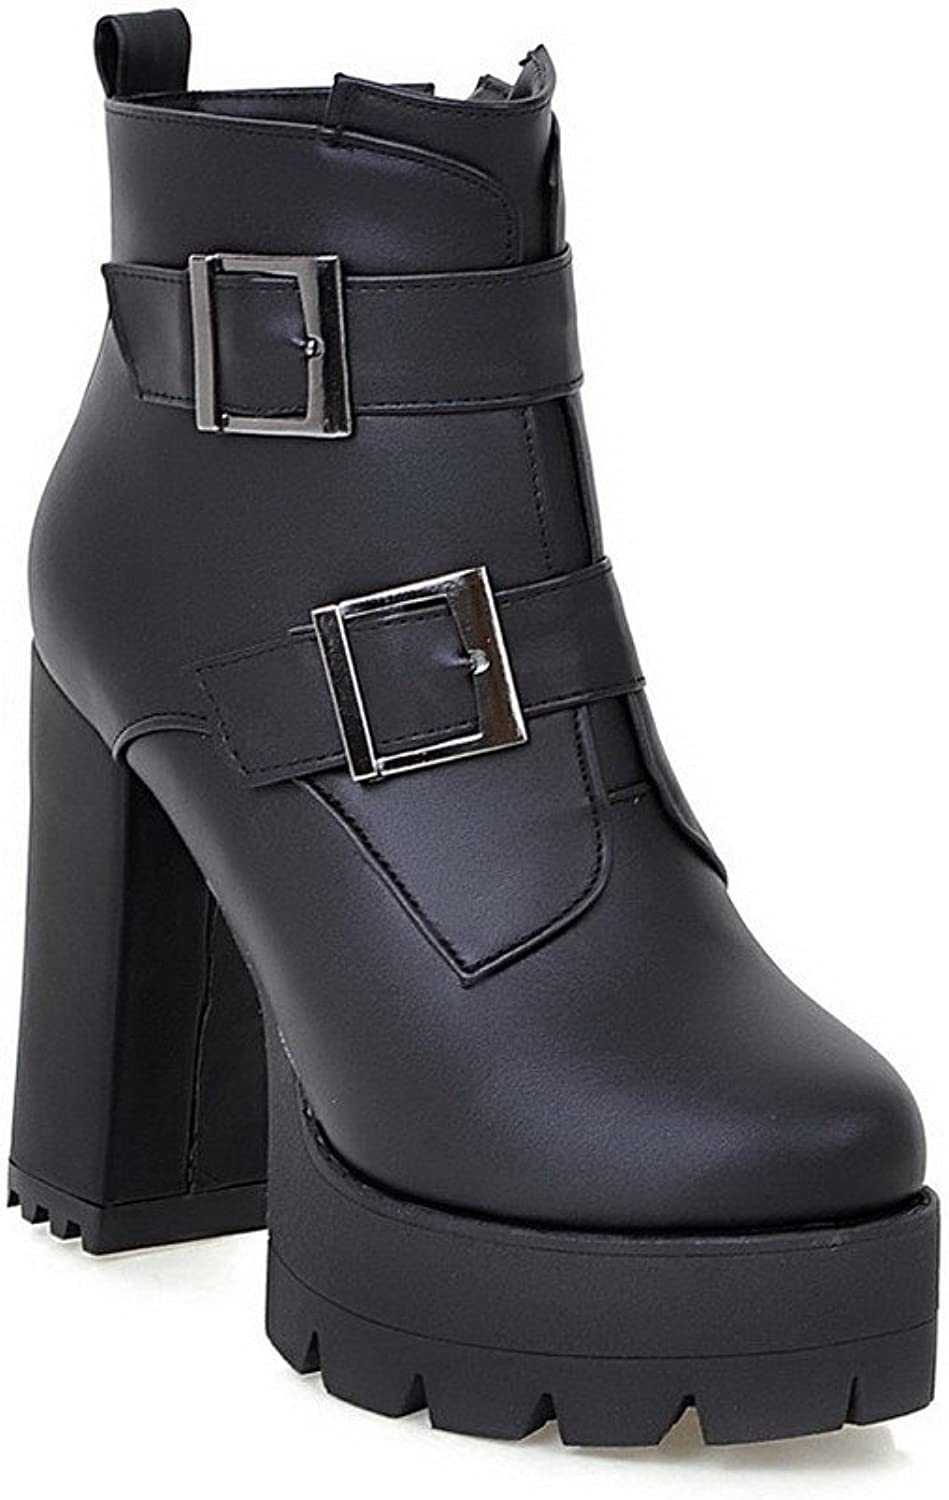 AmoonyFashion Women's High-Heels Soft Leather Low-top Solid Zipper Boots